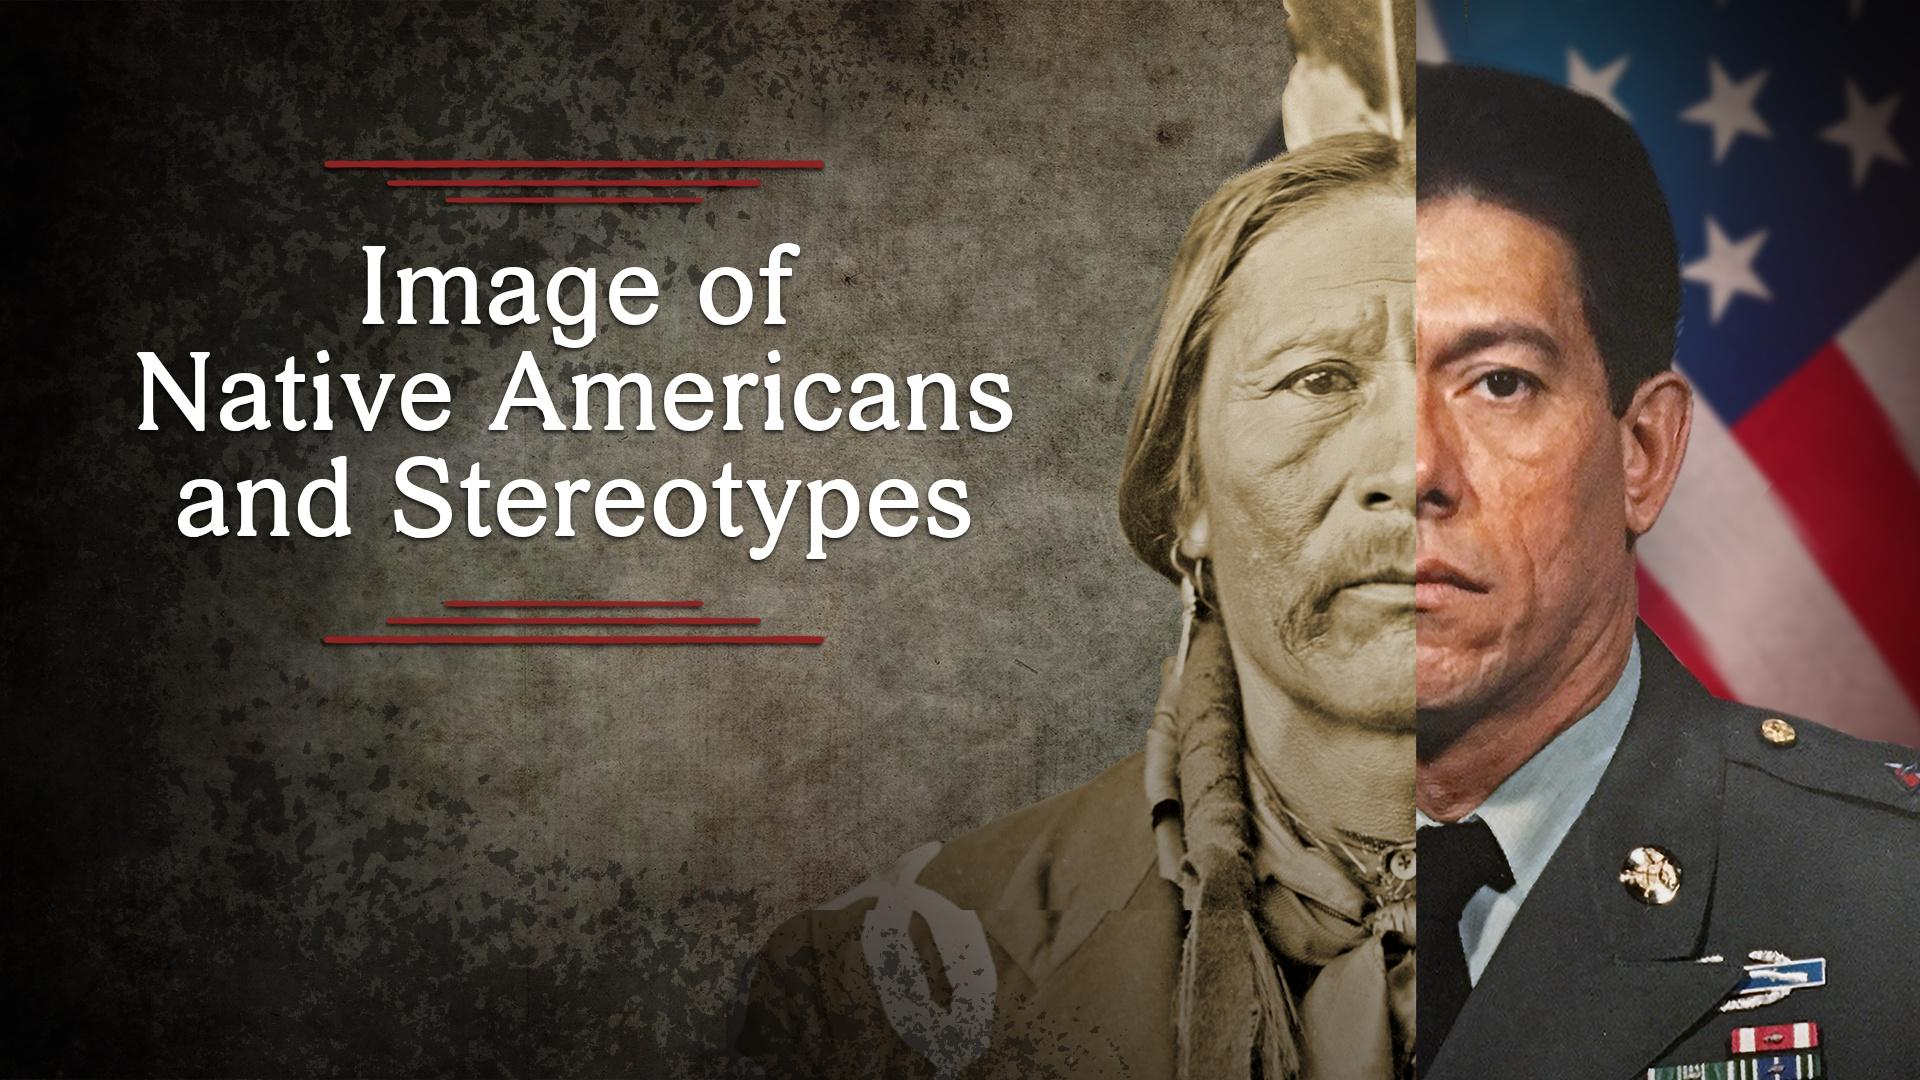 Image of Native Americans and Stereotypes